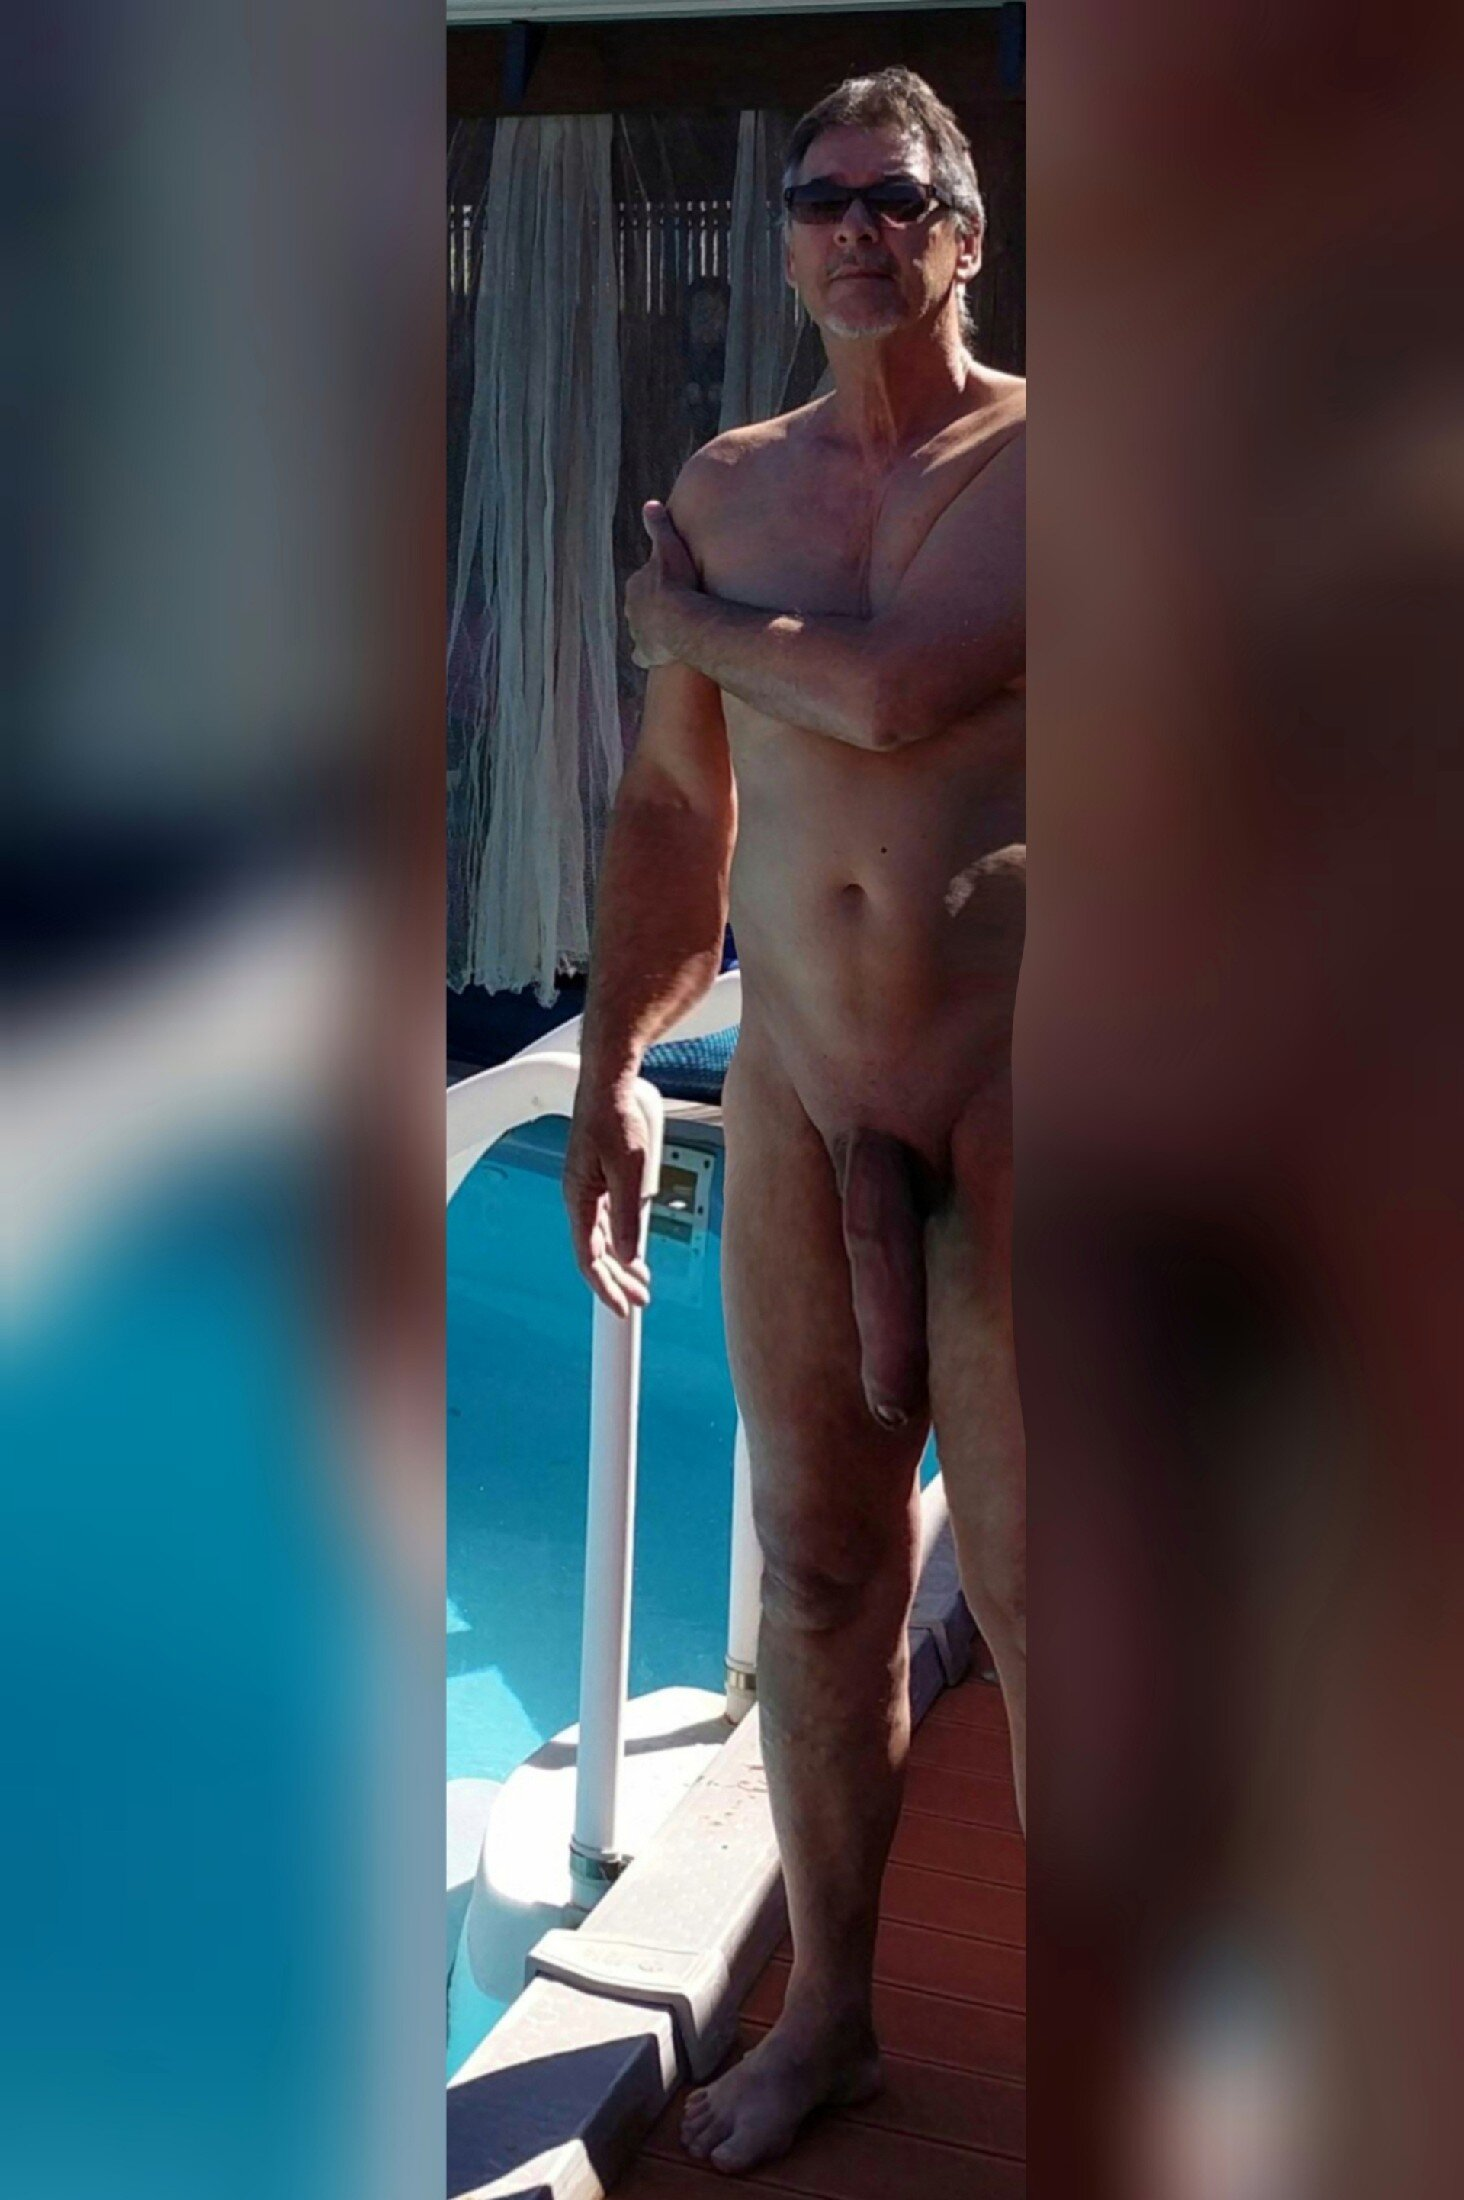 True nudist showing off big mature cock real nudity mature dick flash